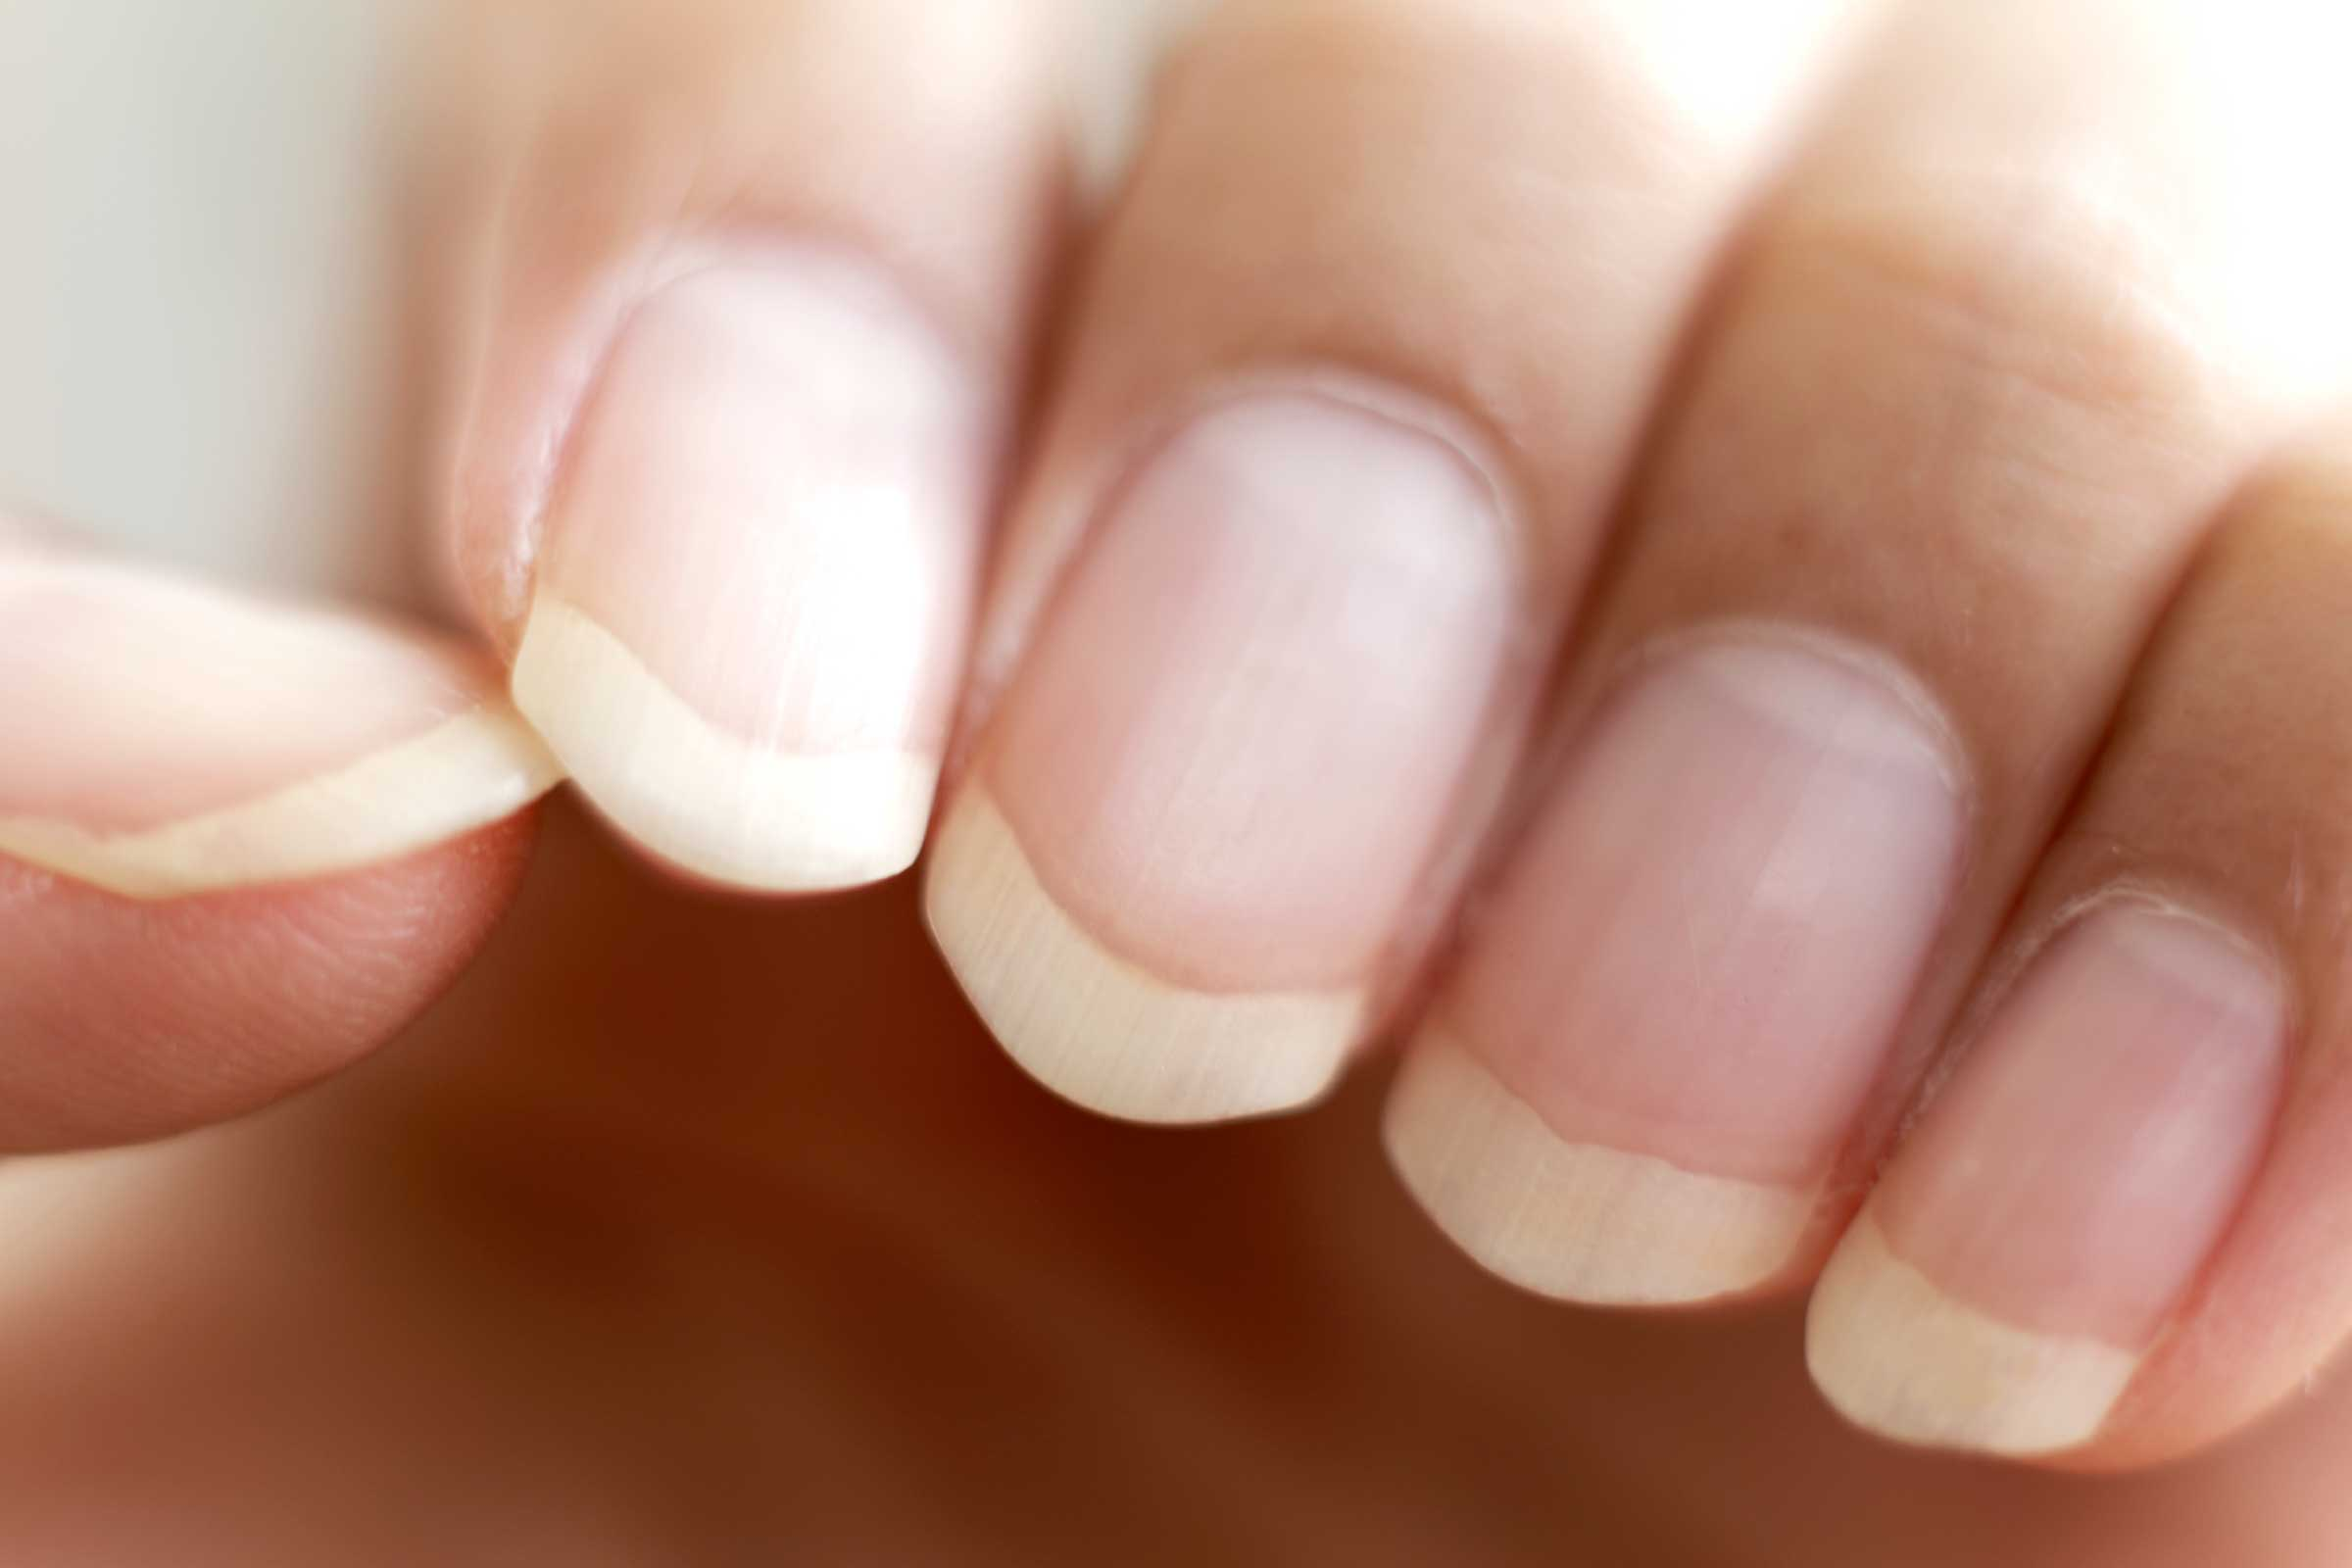 Nails in Health and Disease